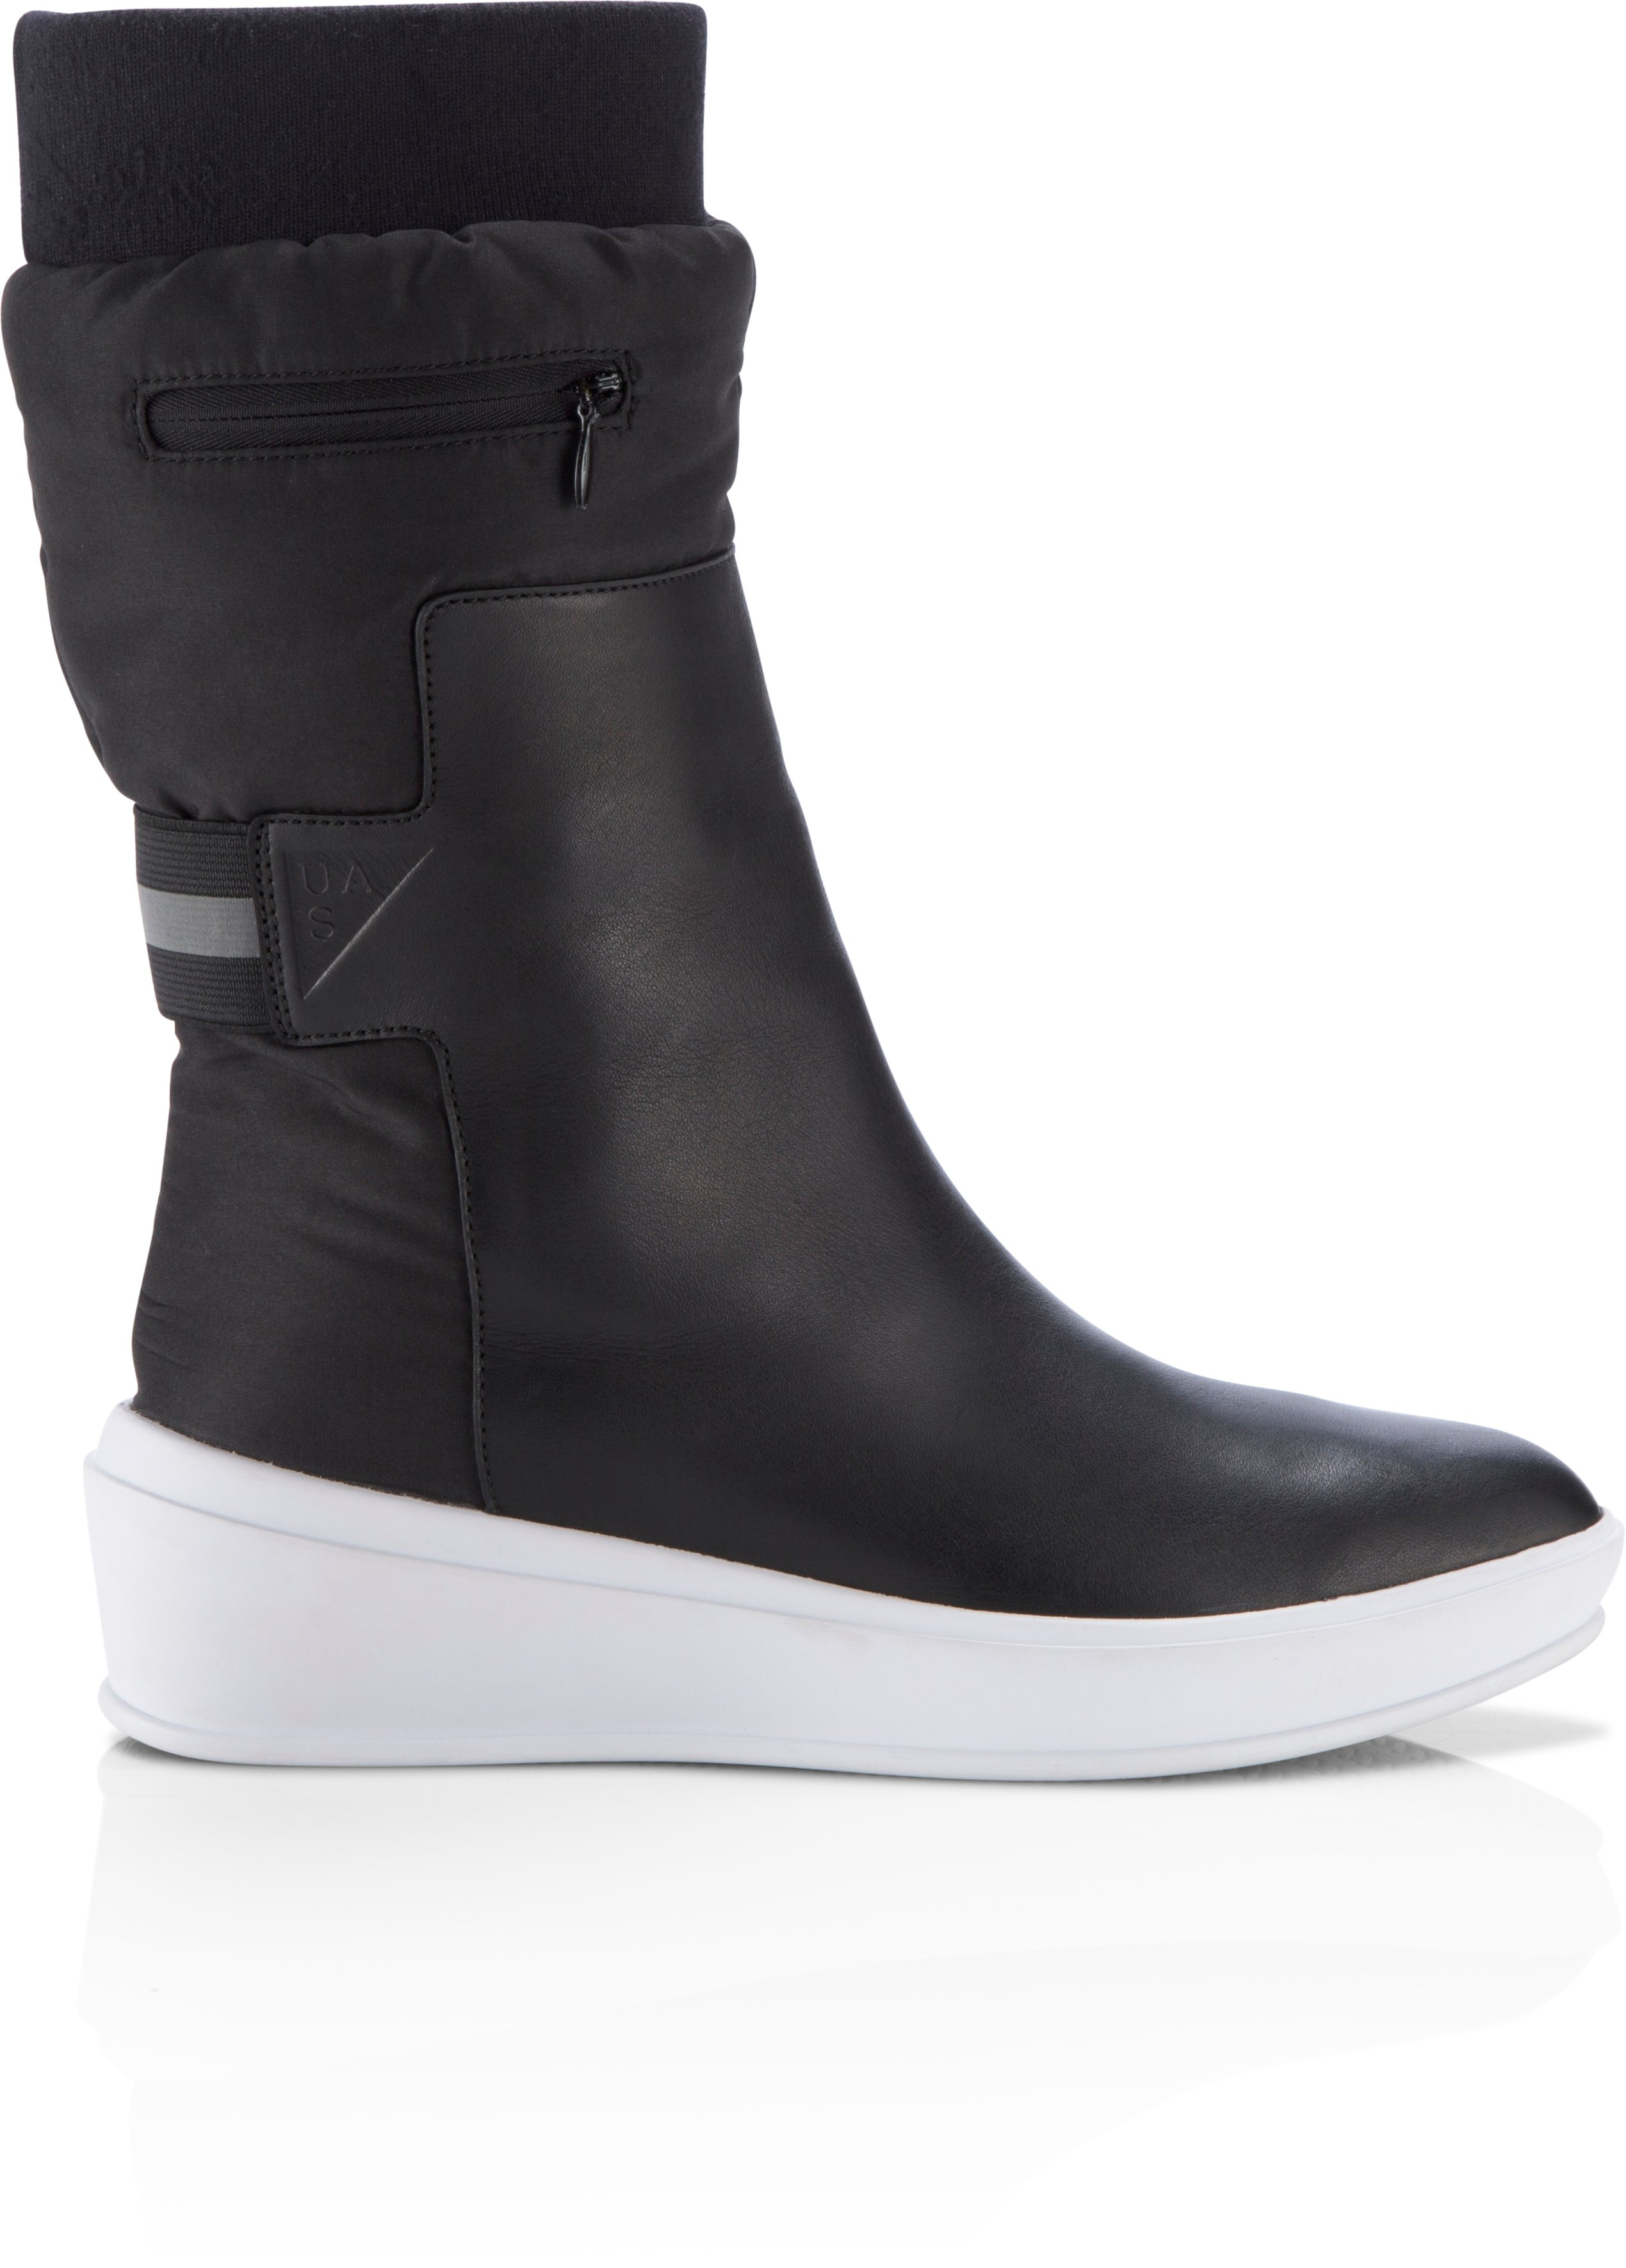 Women's UAS Elevated Wedge Boots, Black , undefined